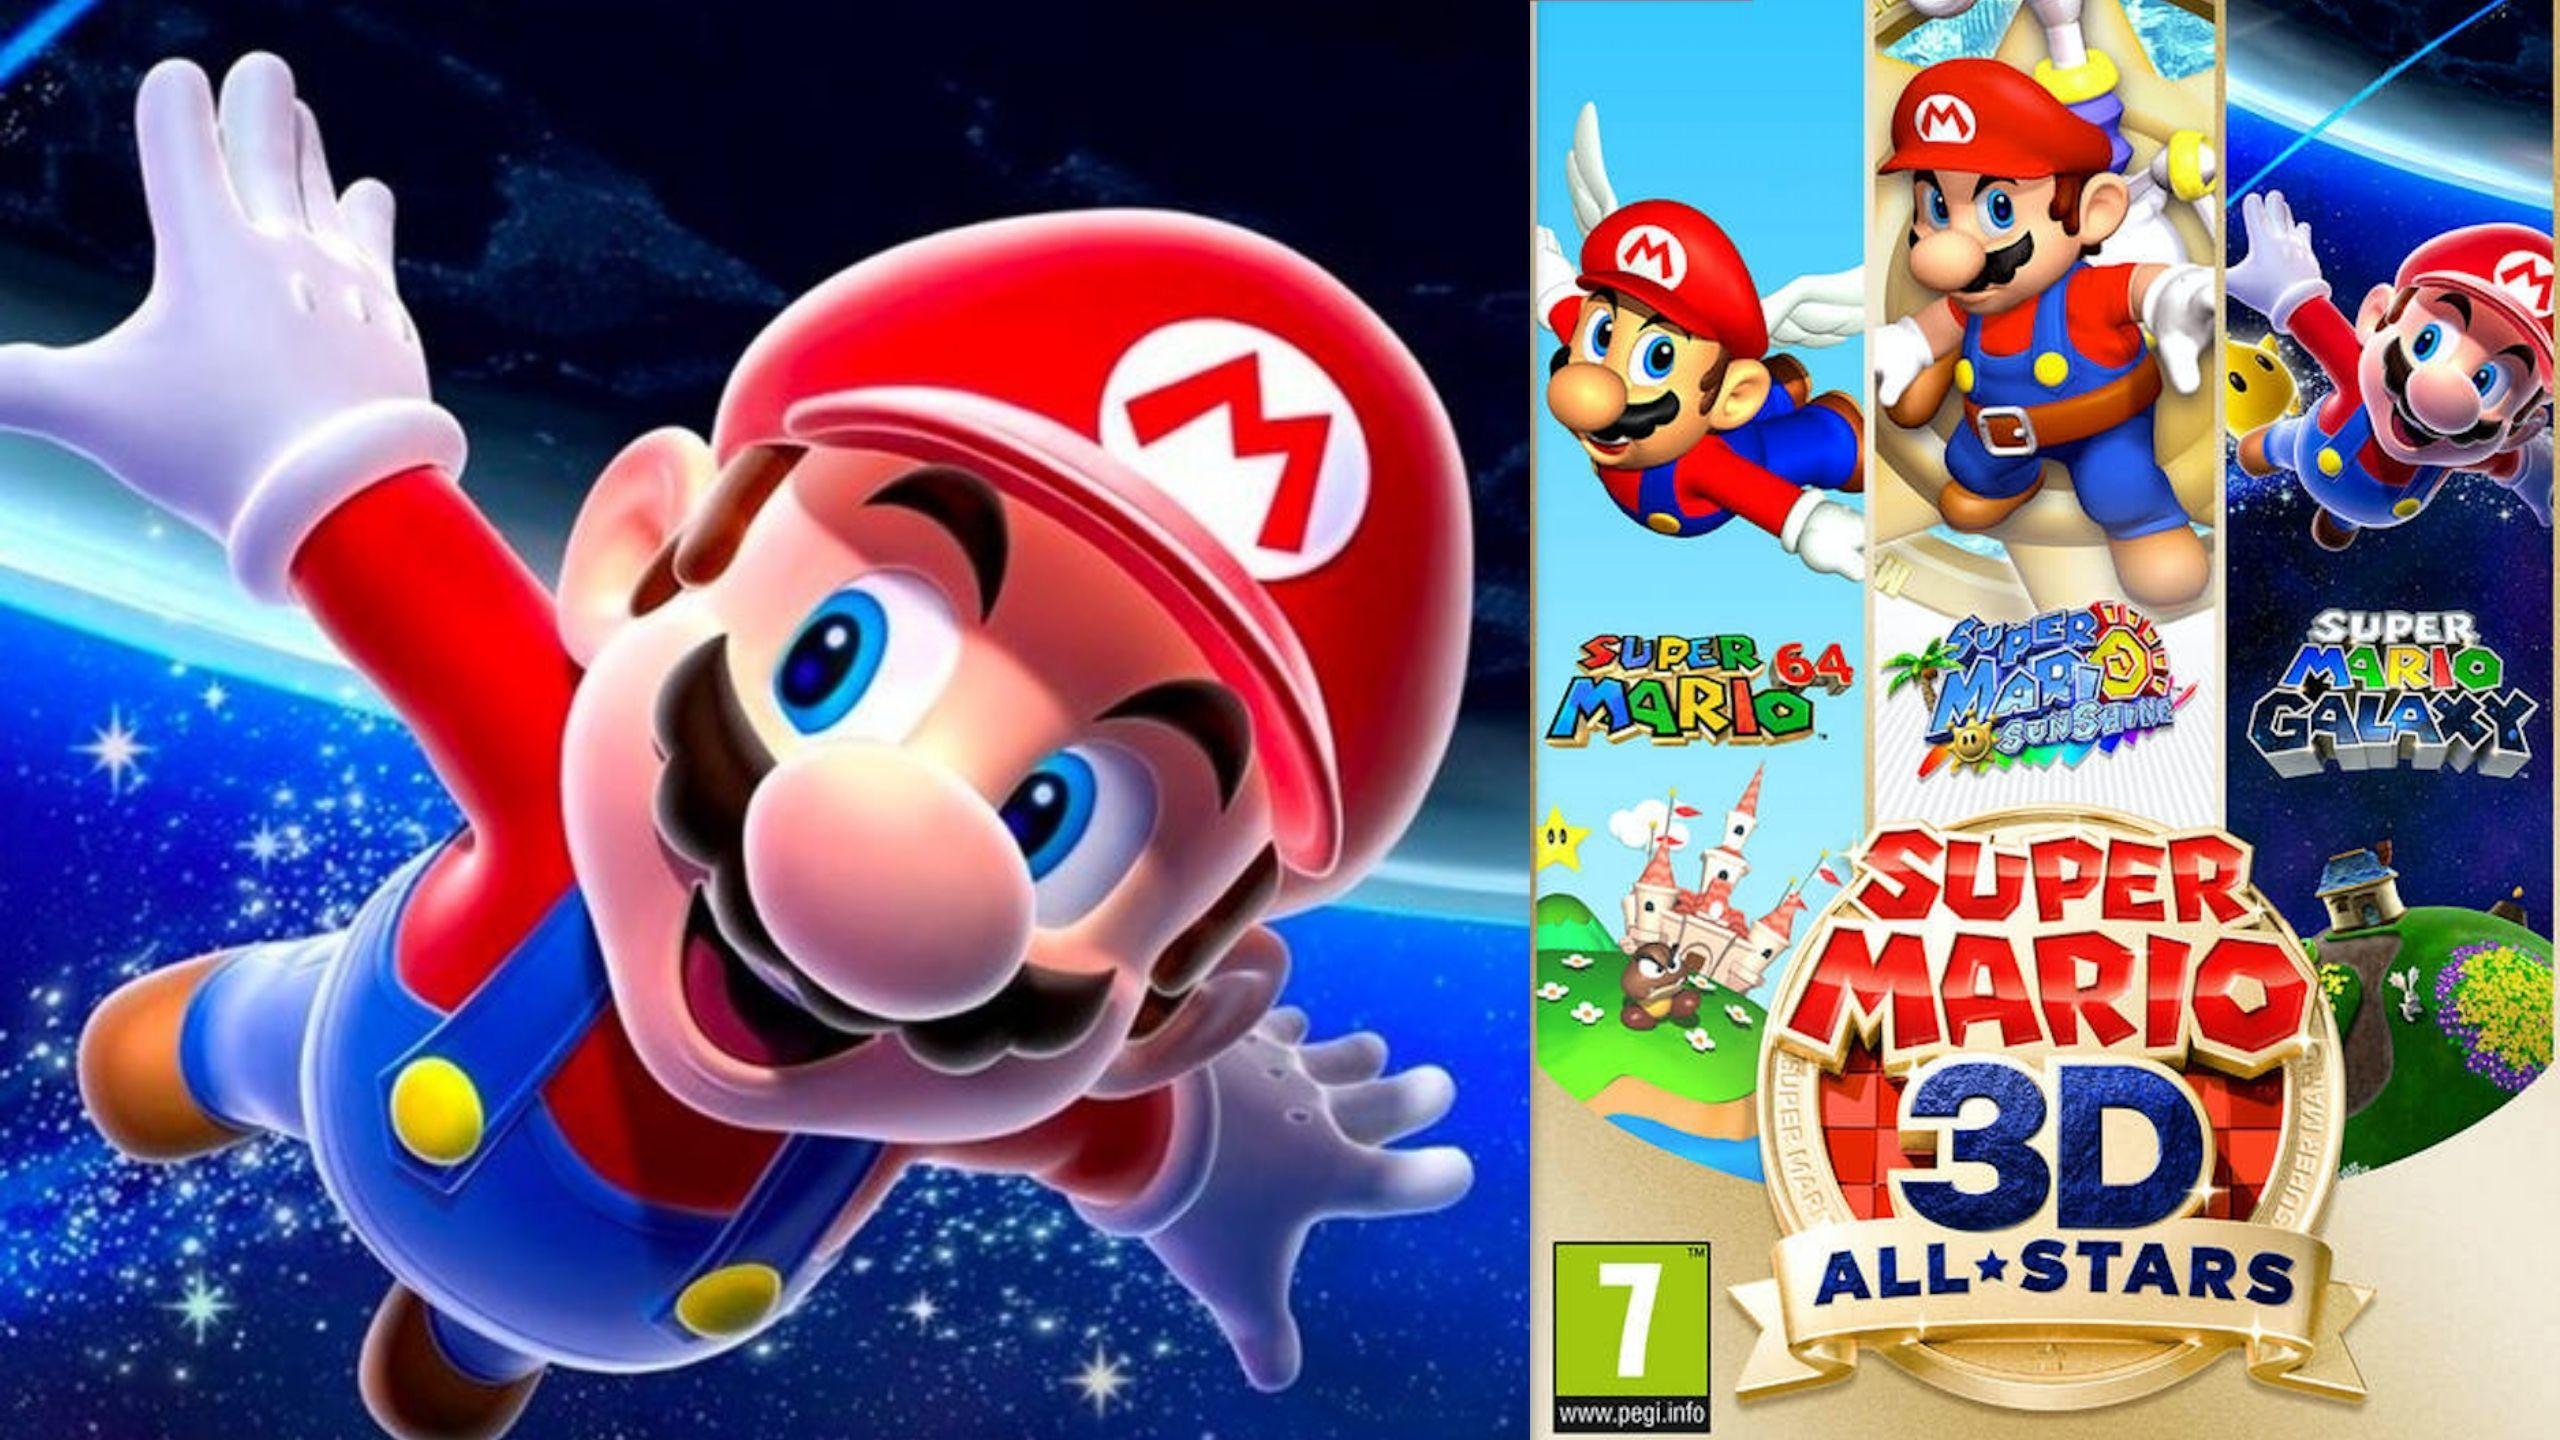 Super Mario 3D All-Stars becomes second best selling game on Amazon